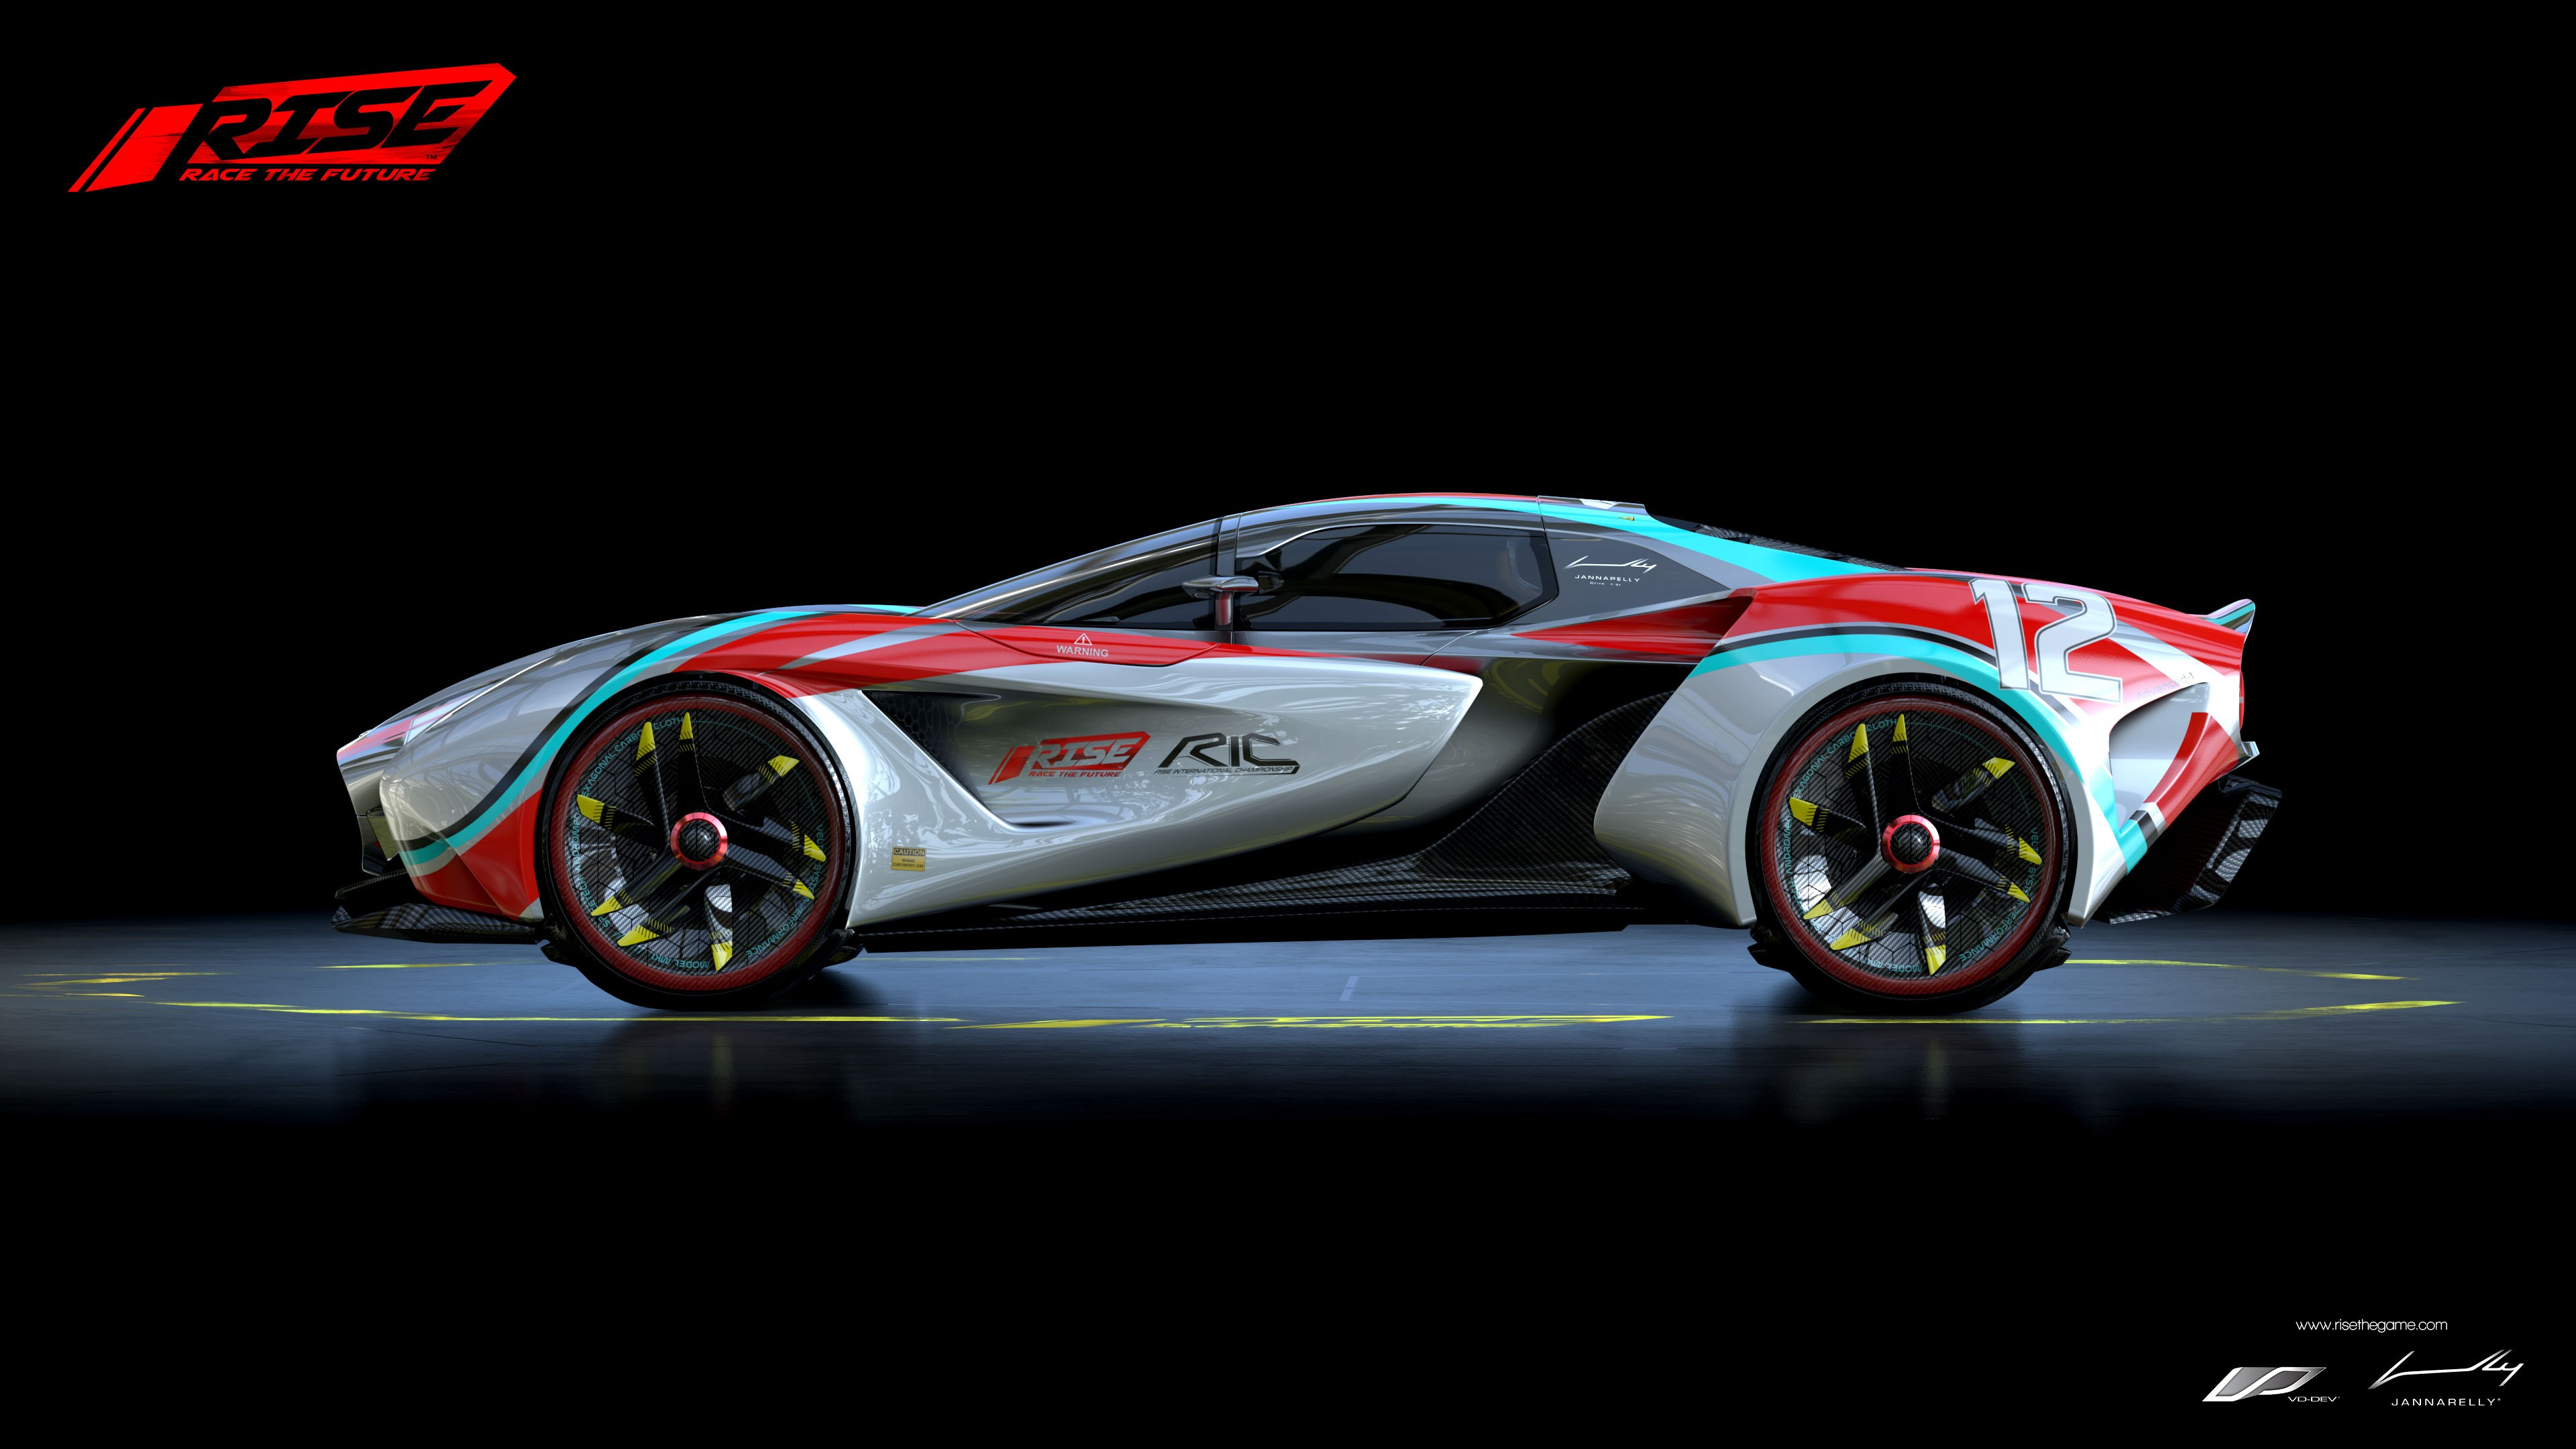 F1 Car Pictures Wallpaper Wallpaper Rise Race The Future Supercar Racing Pc